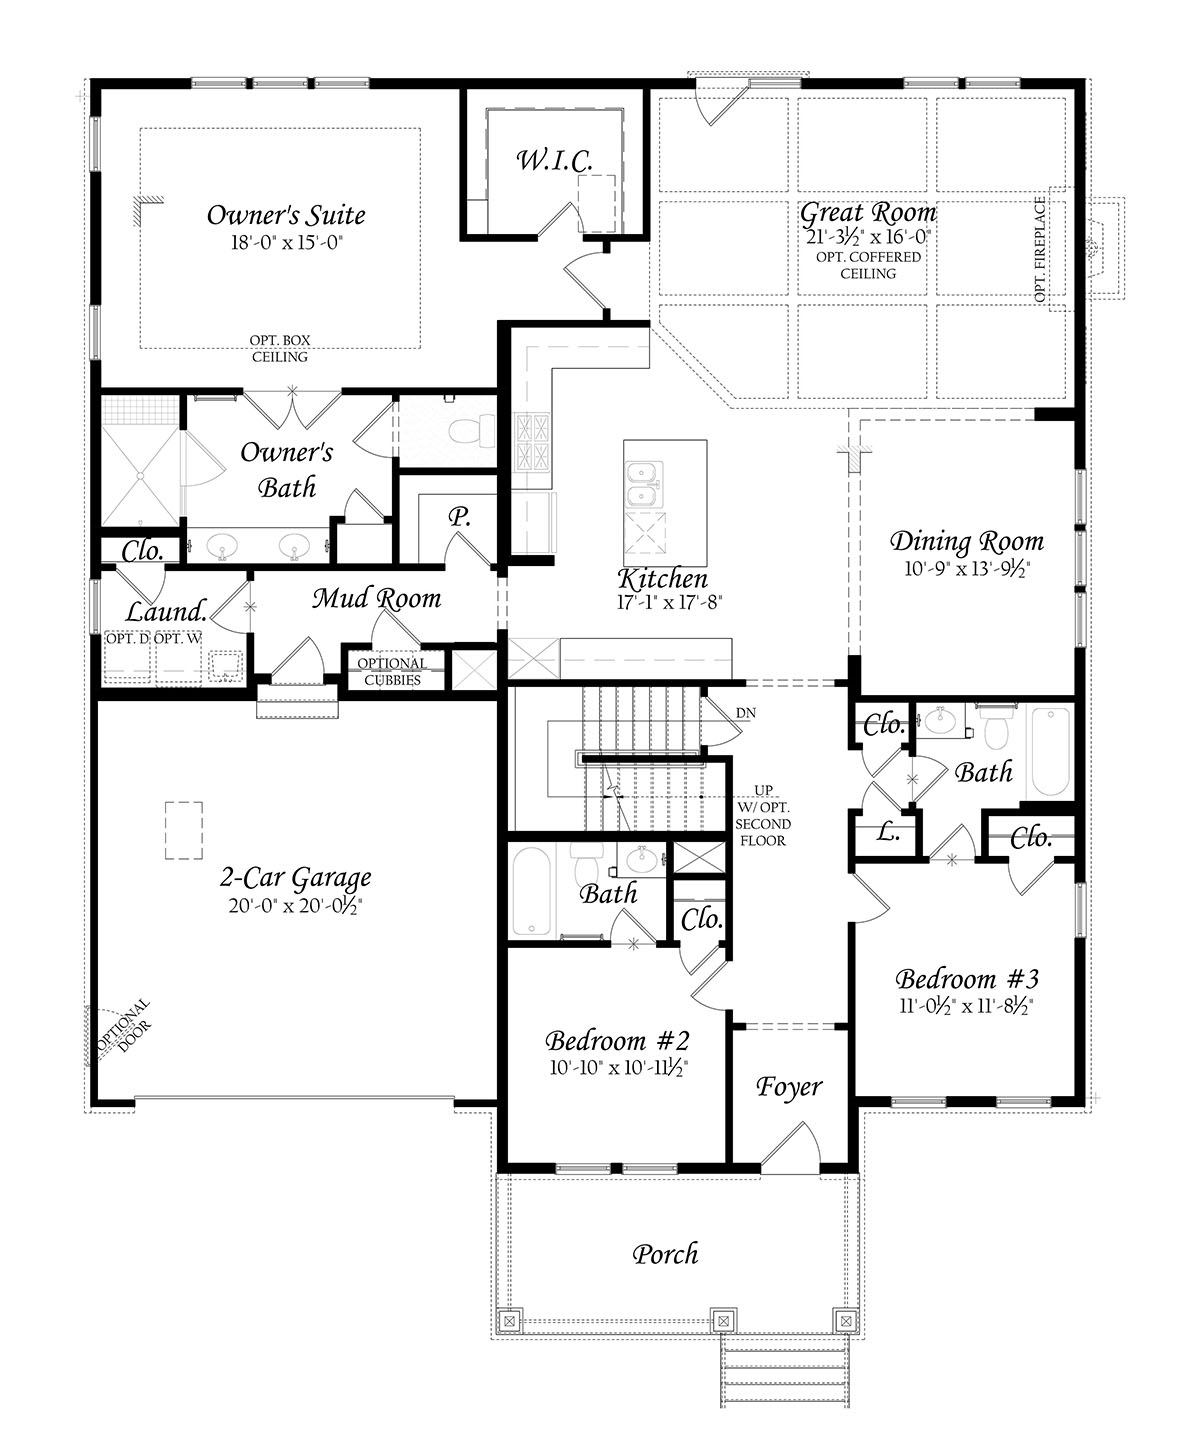 Glendale - 3x0 - Master Floorplan - Elev A - Main Level 91219